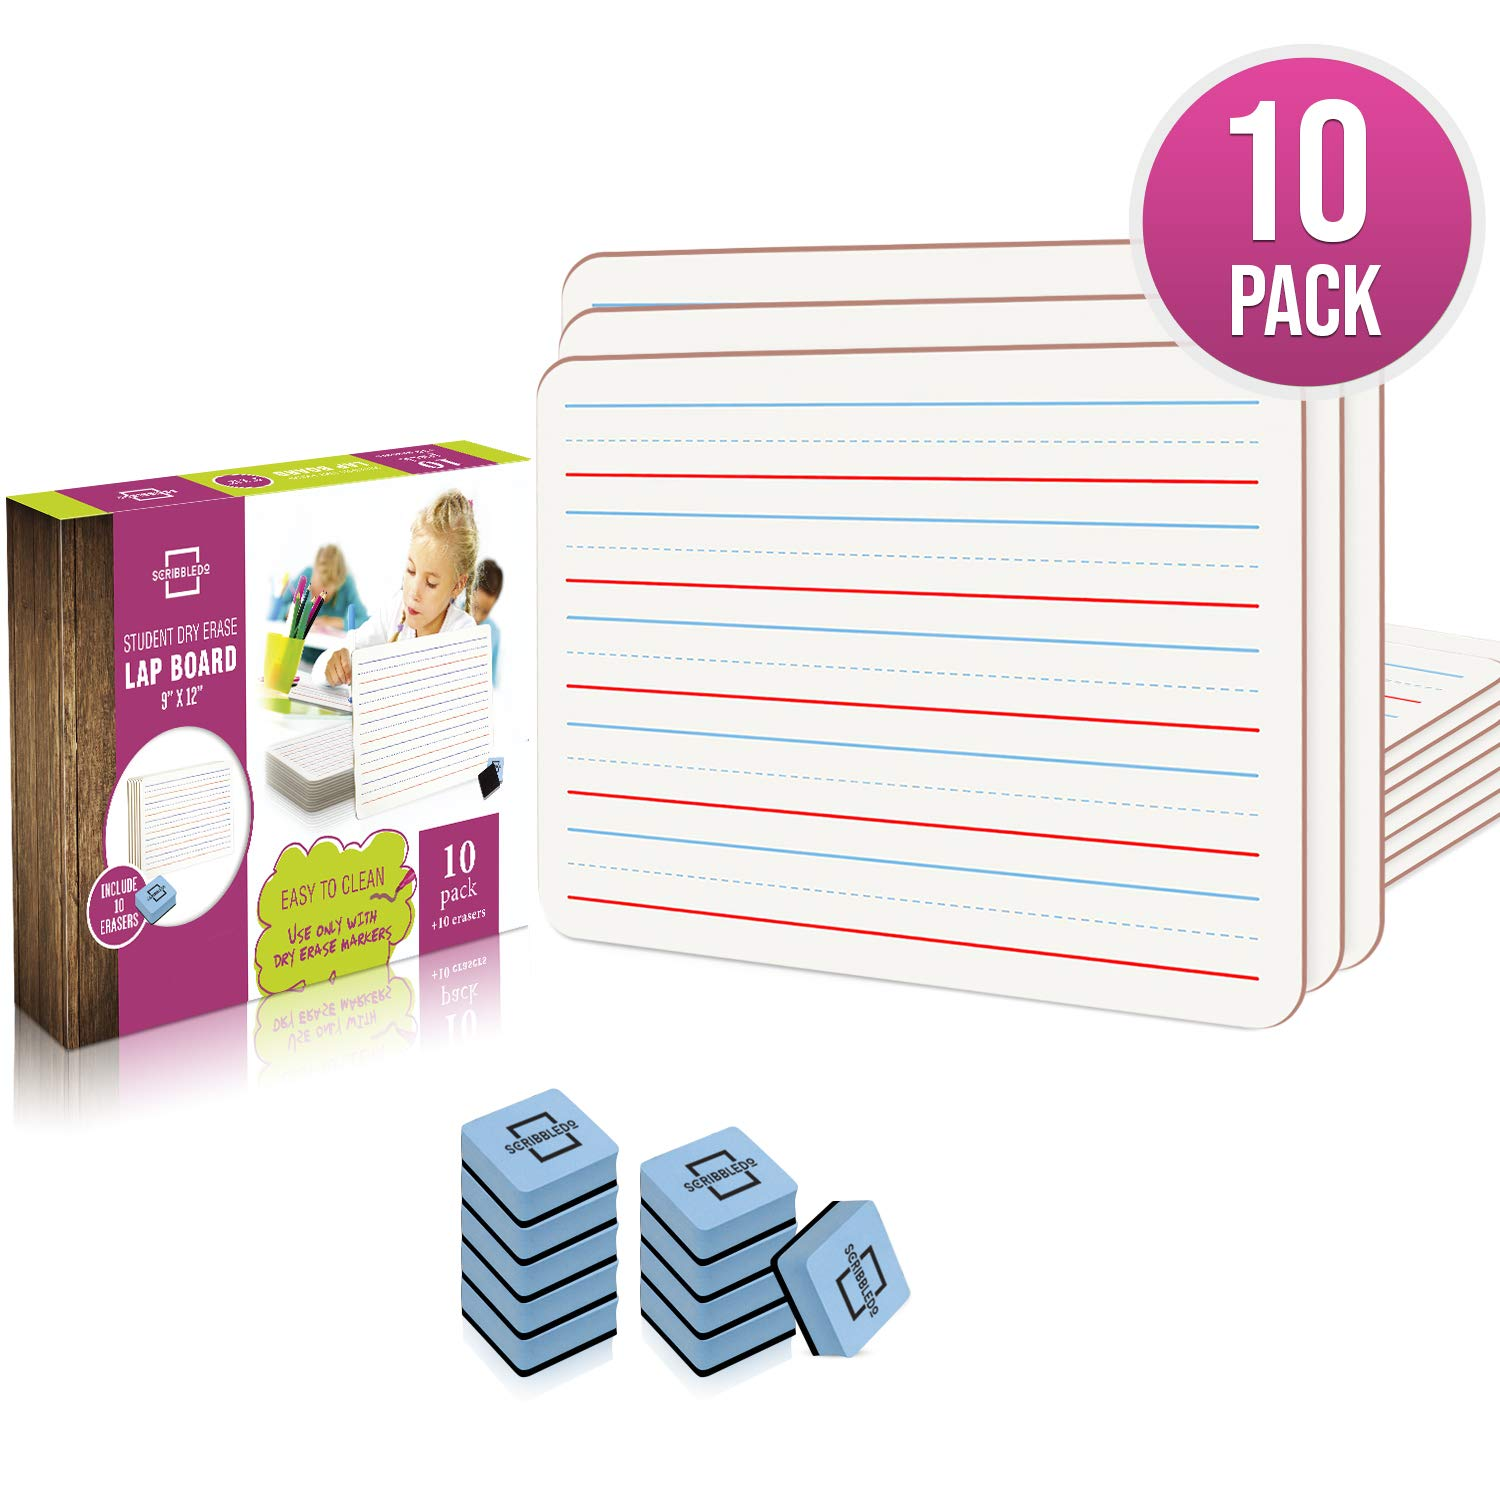 10 Pack Dry Erase Ruled Lap Boards l 9 X12 inch Lined Whiteboard  (Double sided White Boards )